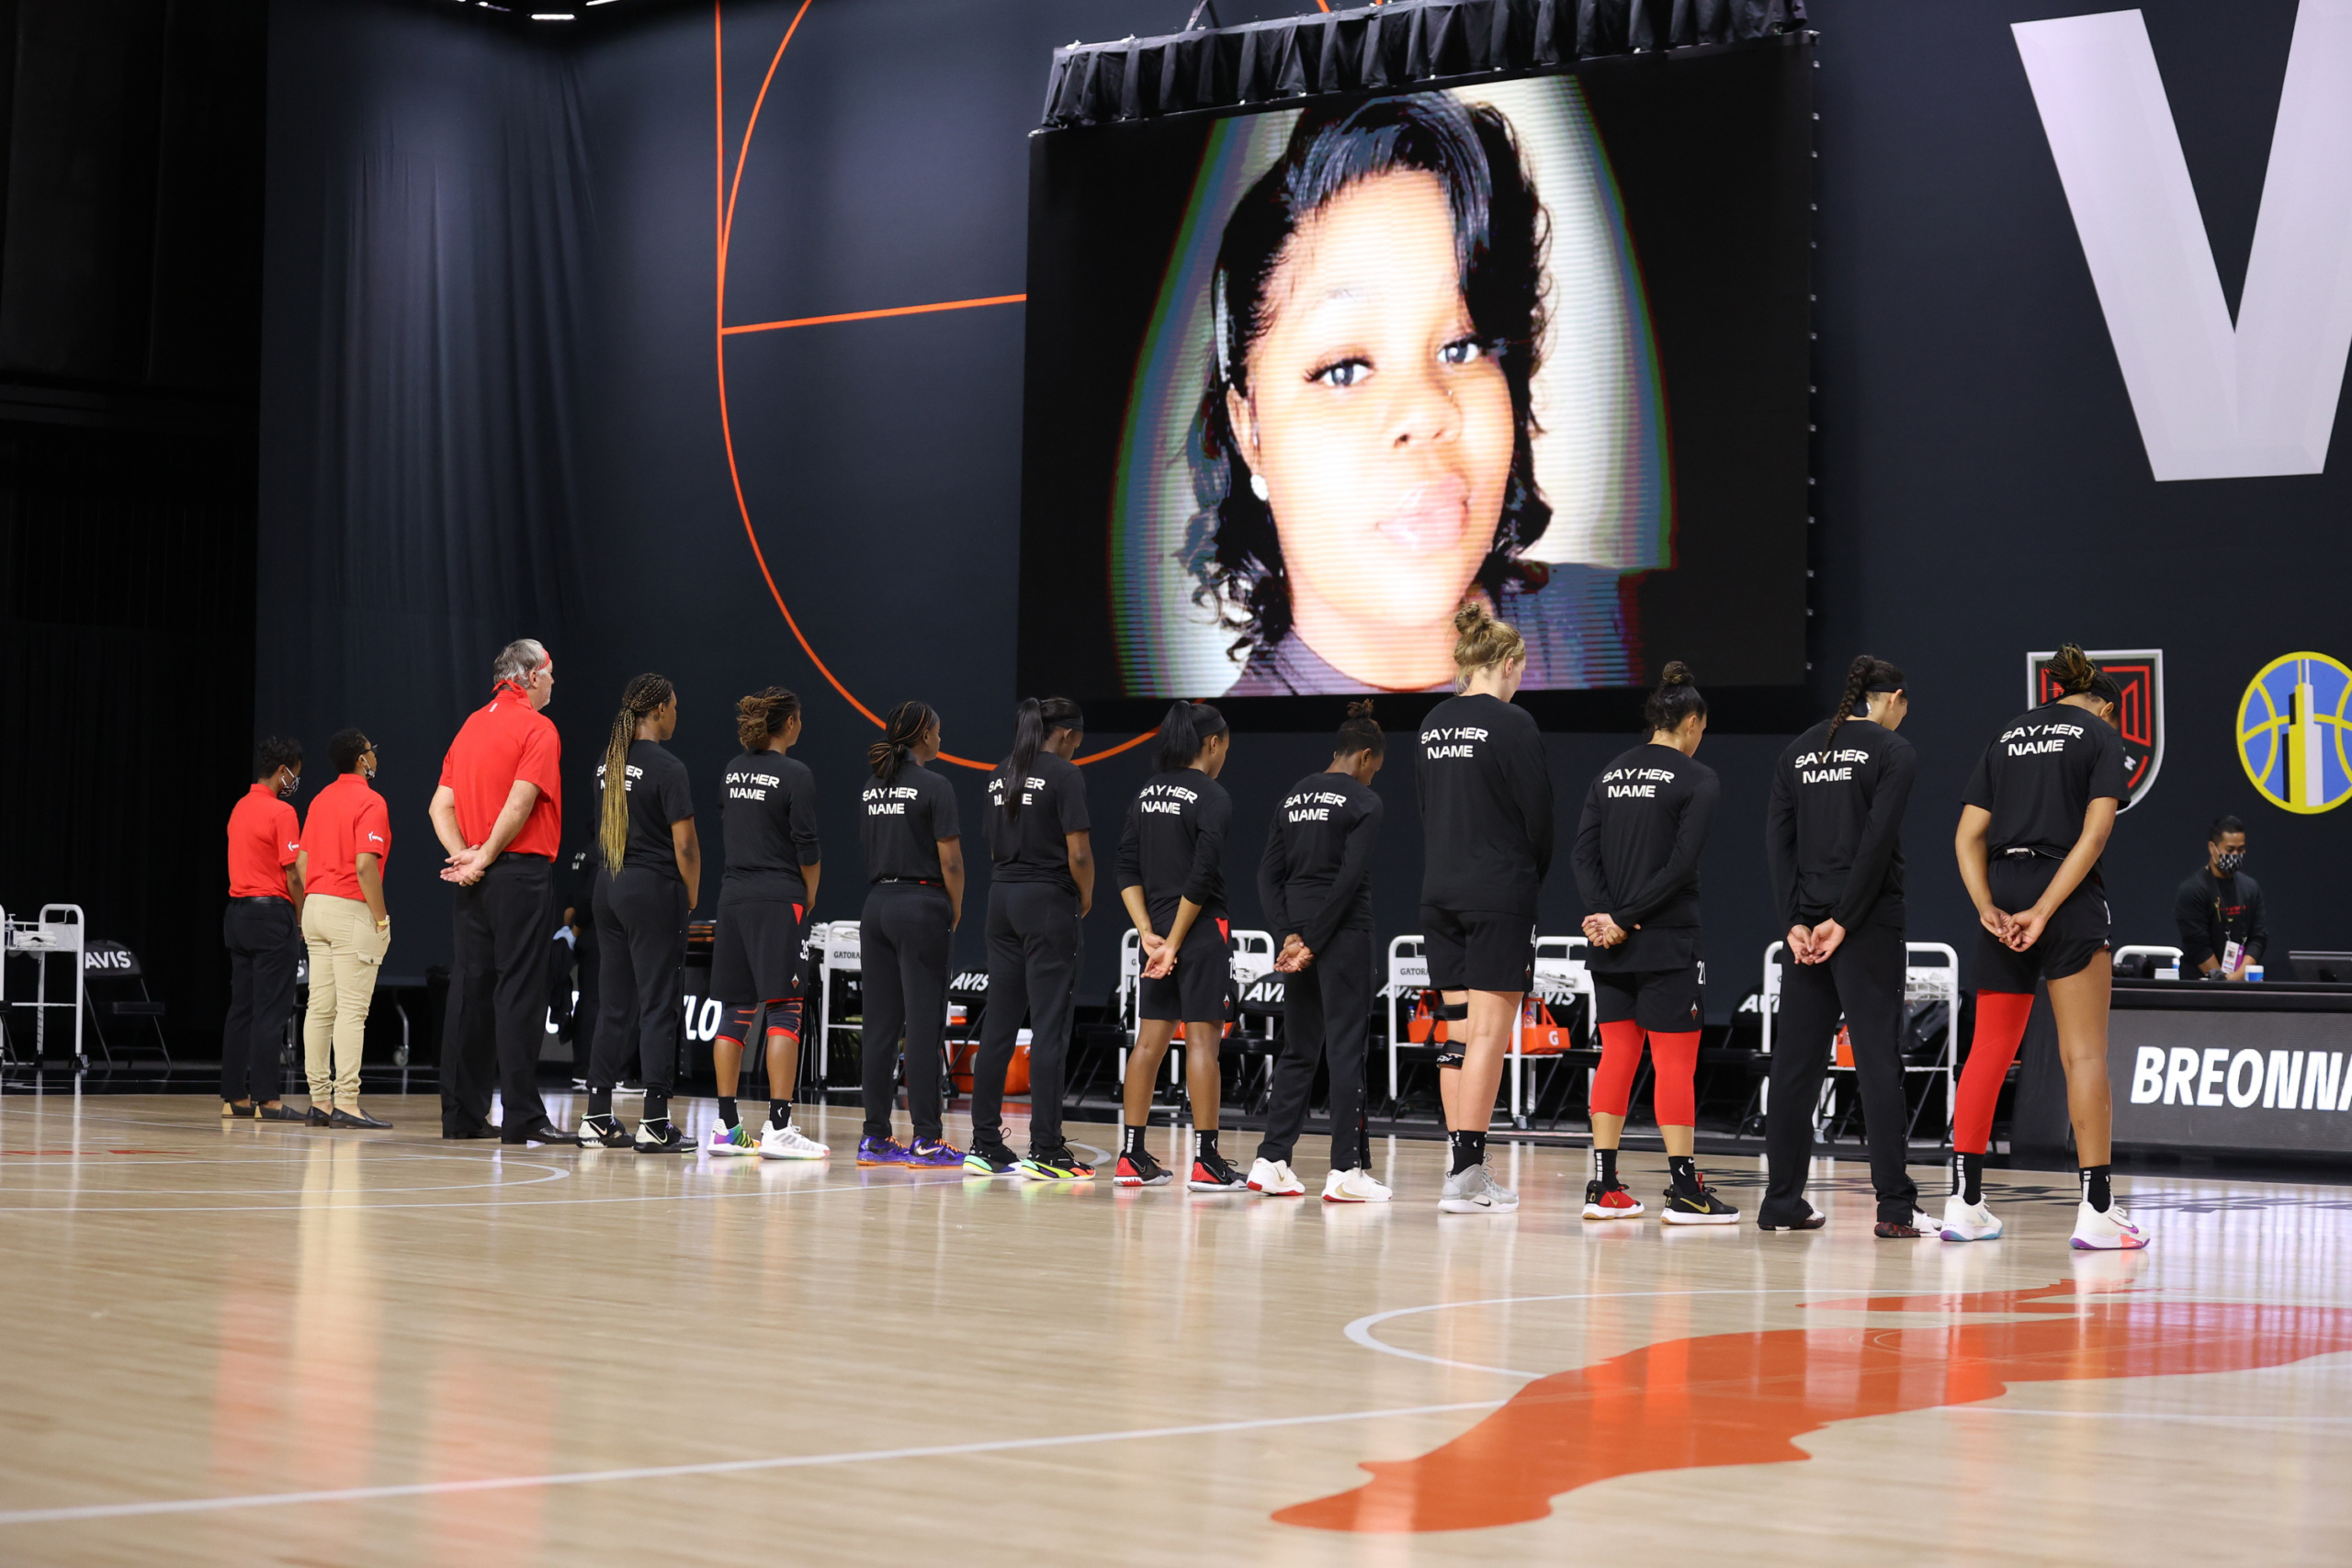 BreakingT Meets the Moment for Socially Charged WNBA Season